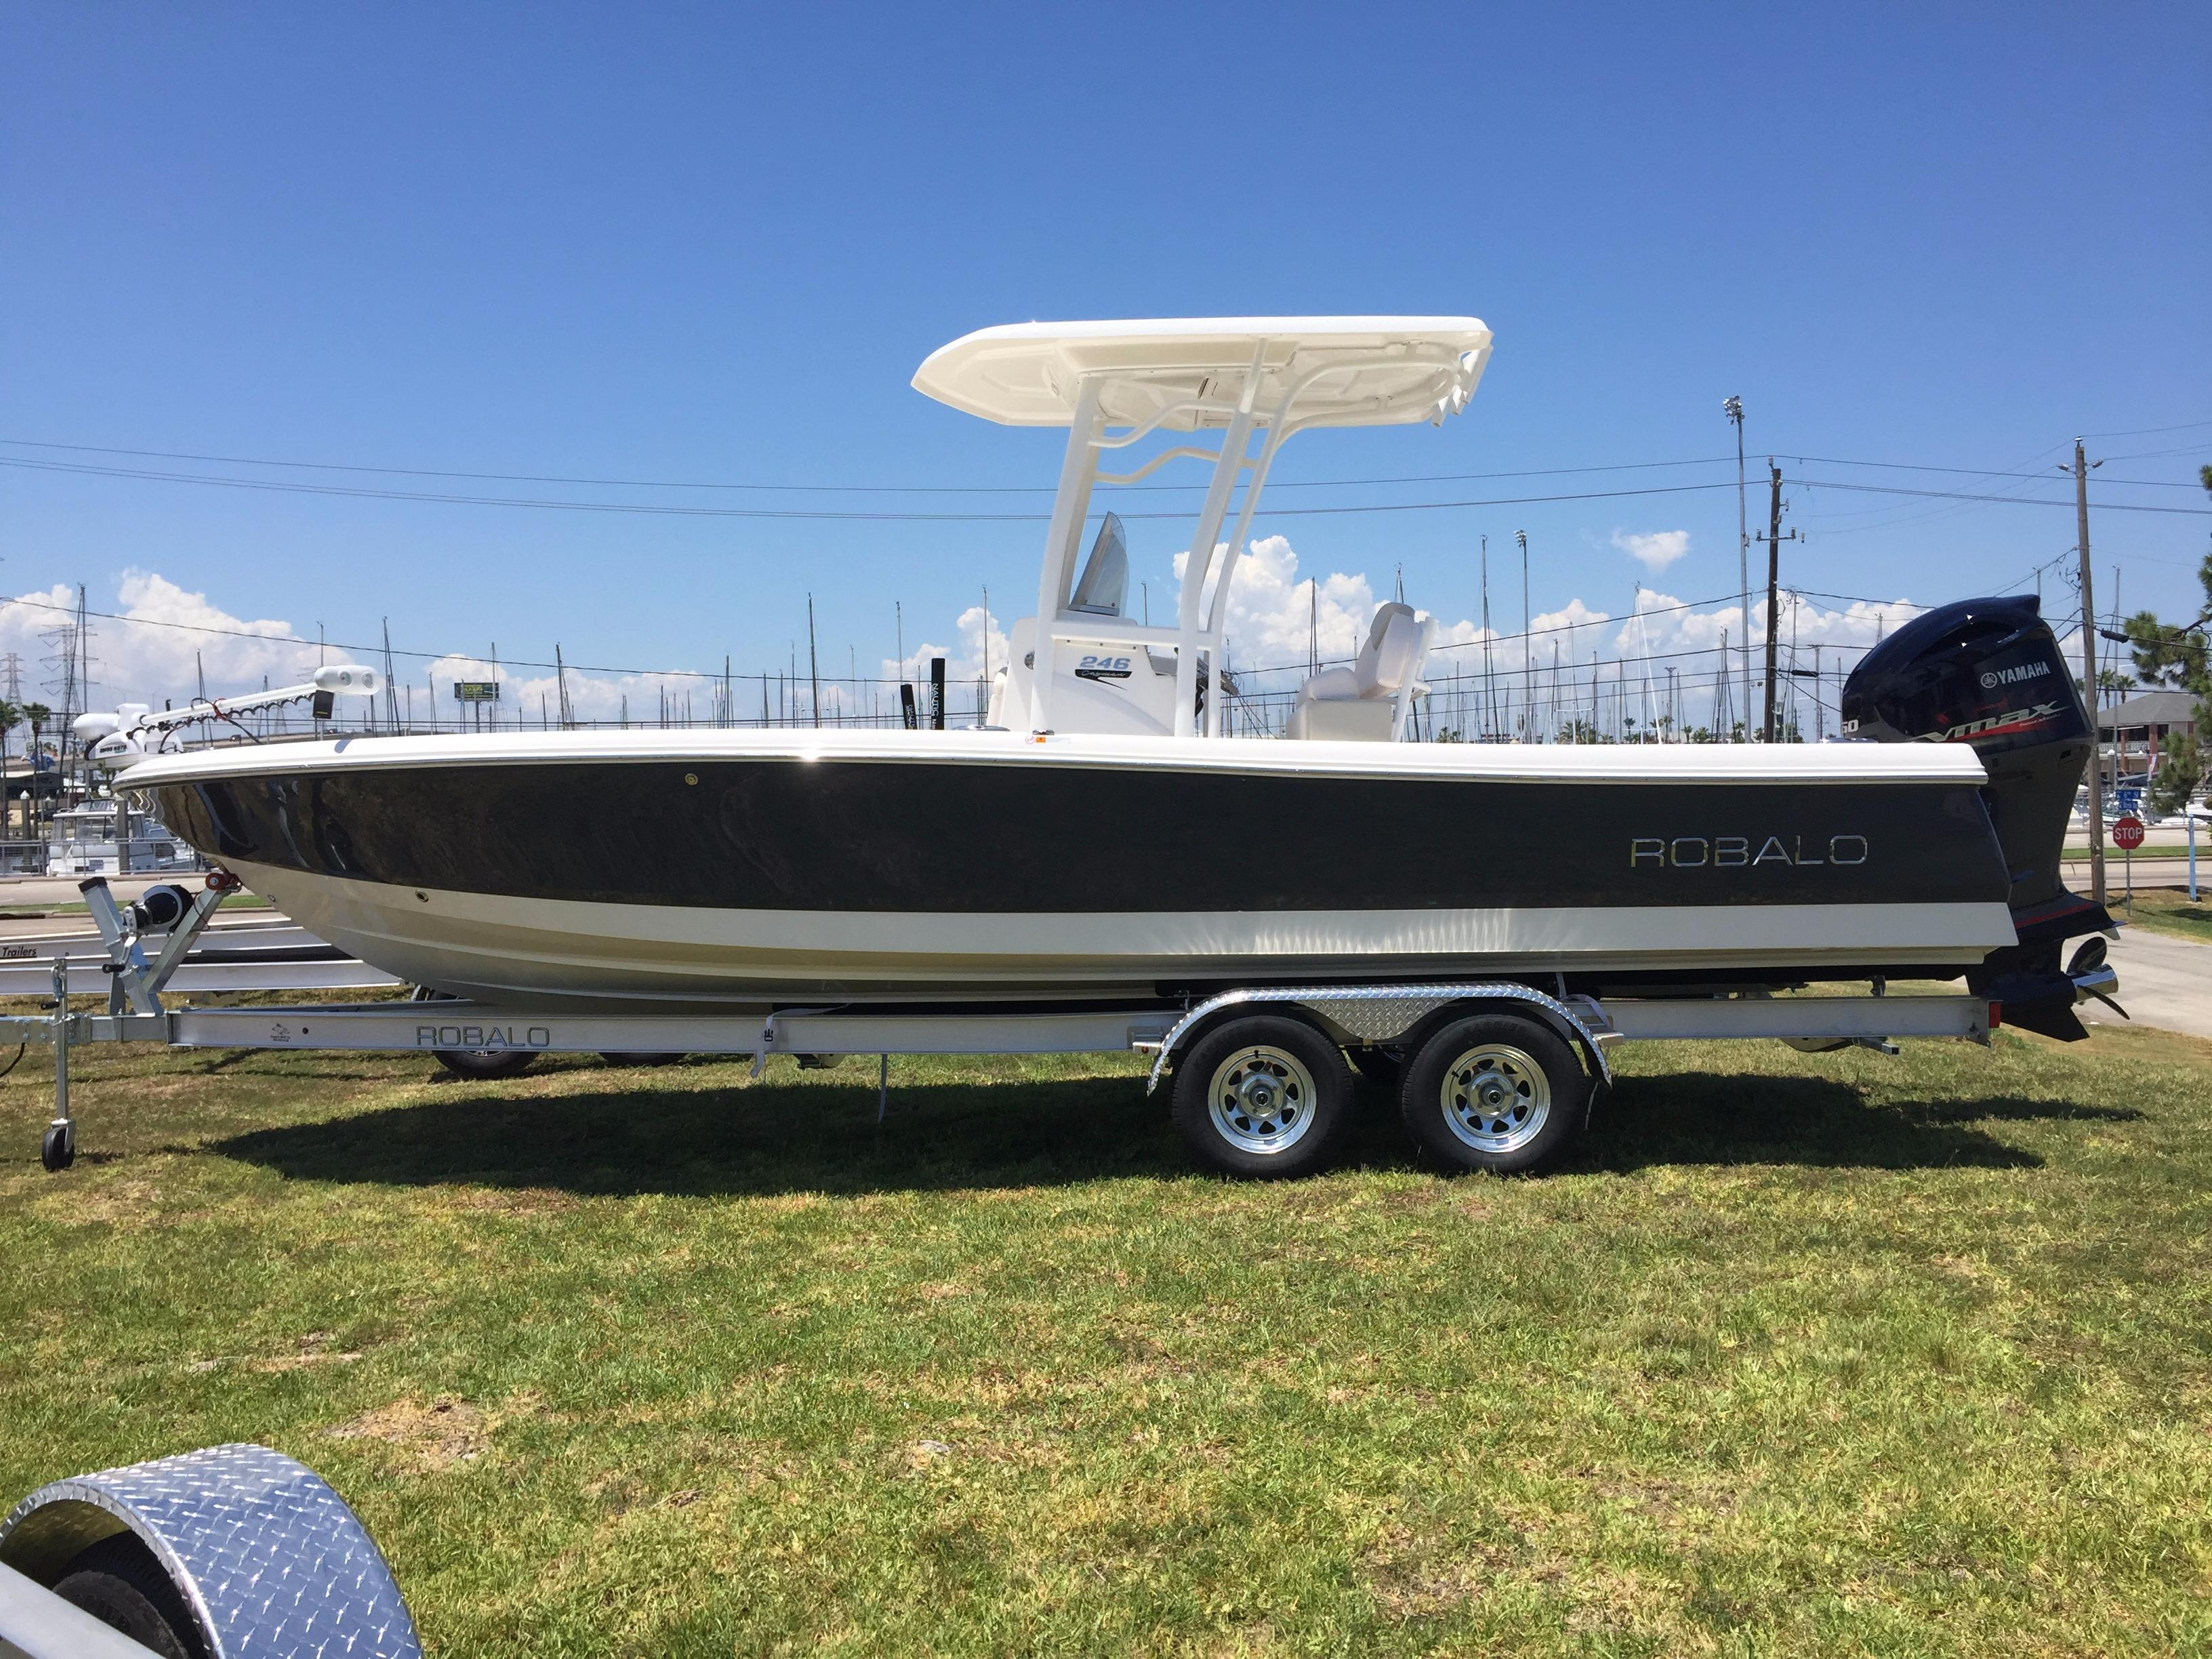 Robalo Boats For Sale Craigslist >> New and Used Boats for Sale in Houston, CT